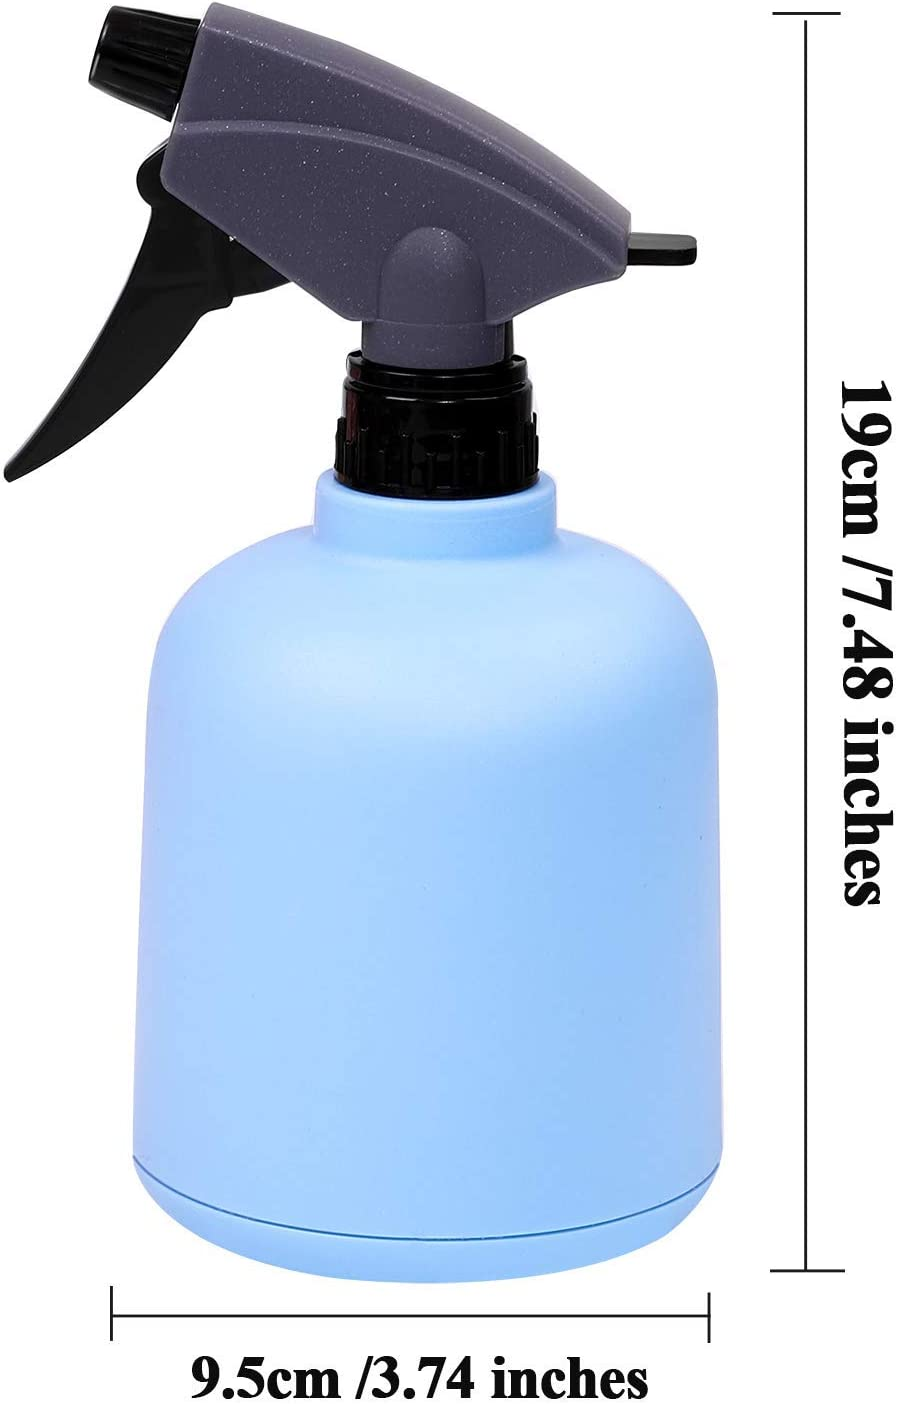 DZX 2 Pieces Blue and Pink Plastic Spray Bottle Empty Spray Bottle Colorful Bottles for Gardening, Cleaning, 600ml,mini watering can Blue, Yellow